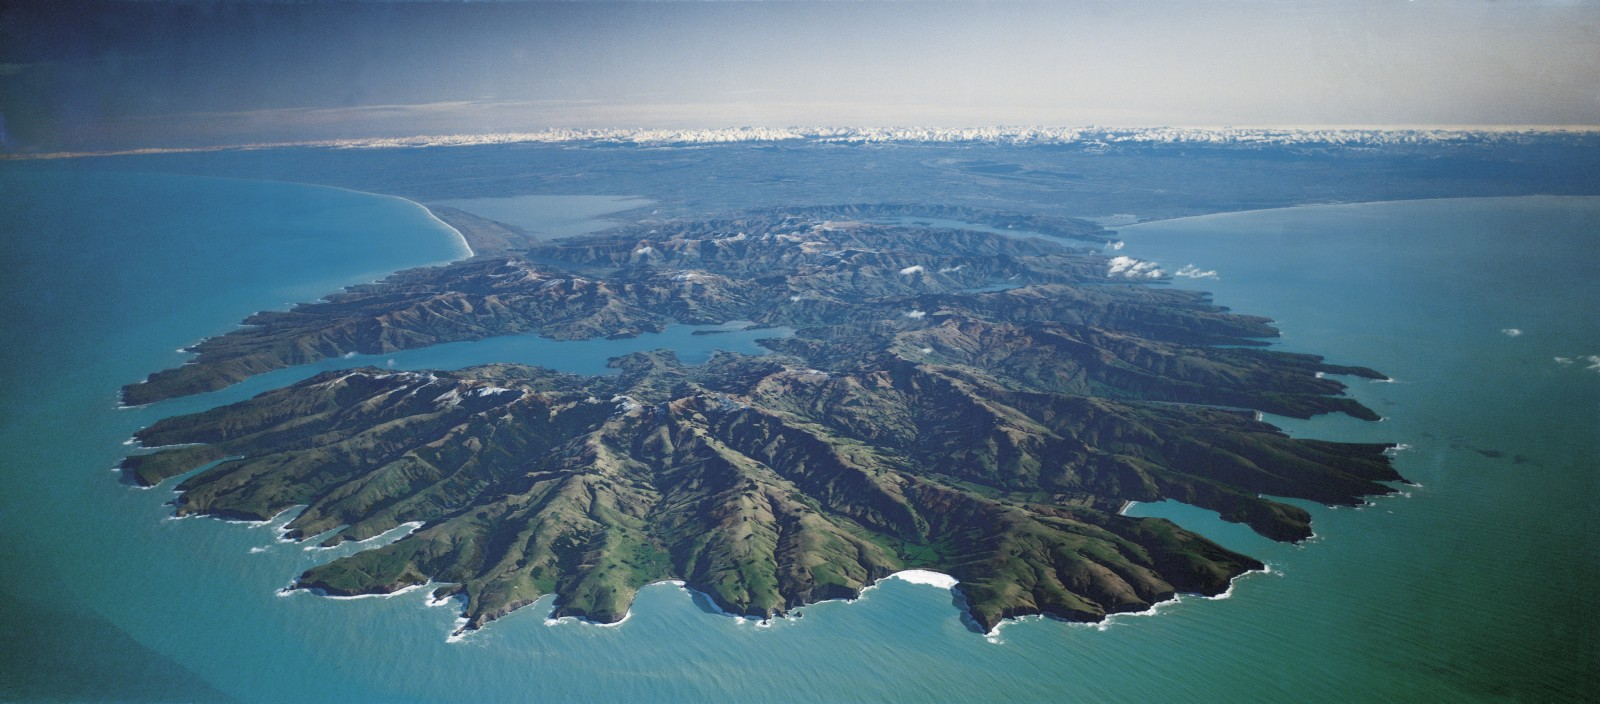 Ancient volcanism lies behind the mountainous terrain of the peninsula and its twin harbours—Akaroa, opening to the south and the more distant Lyttelton opening to the north. Both harbours were once eruptive centres.